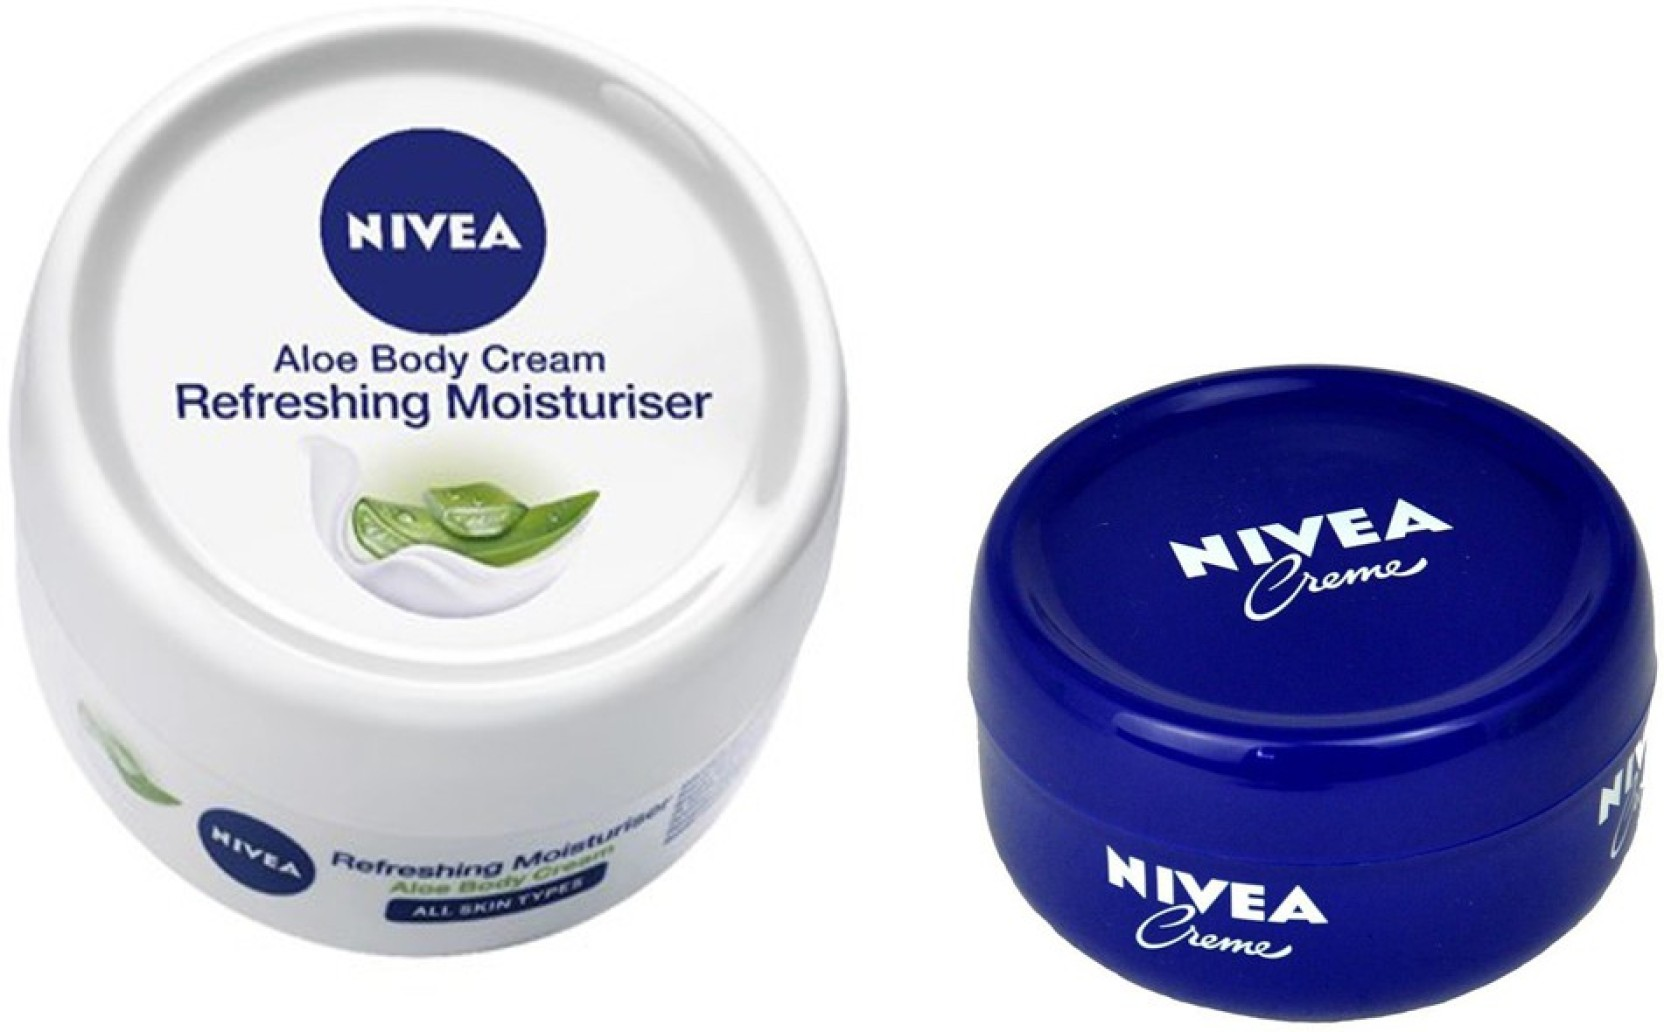 Nivea Aloe Body Cream Refreshing Moisturiser 200 Ml Soft Creme 100 100ml Add To Cart